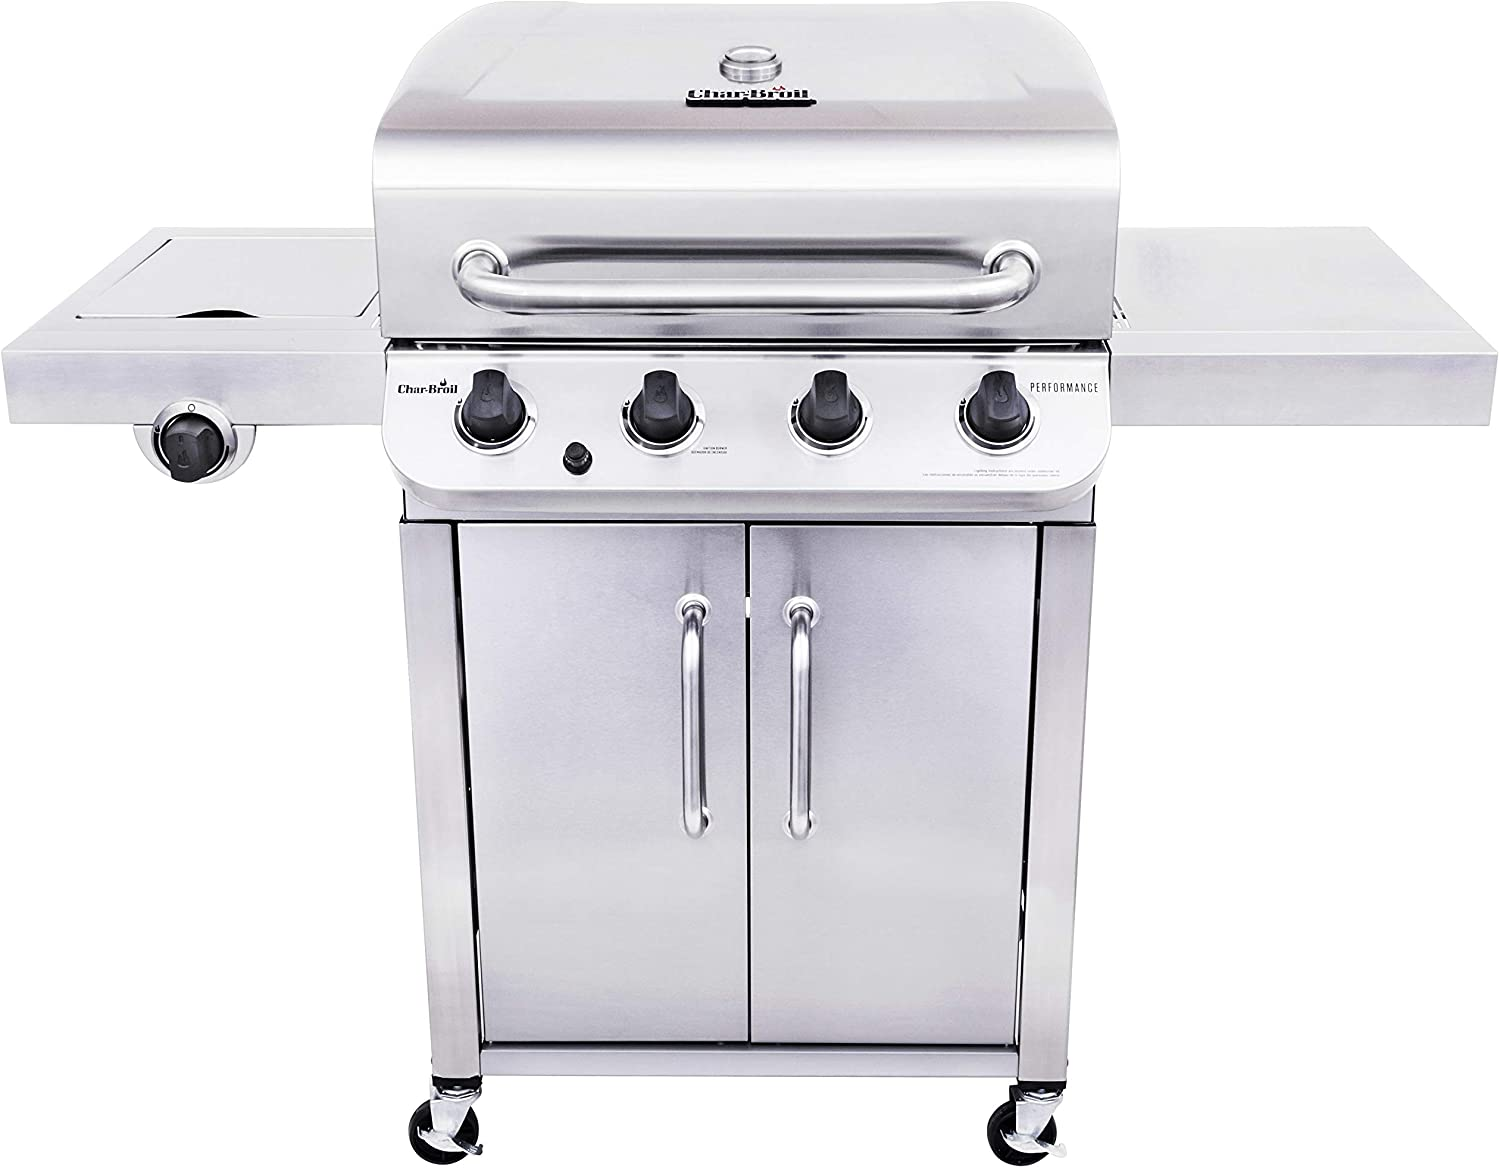 Char-Broil Stainless Steel Burner